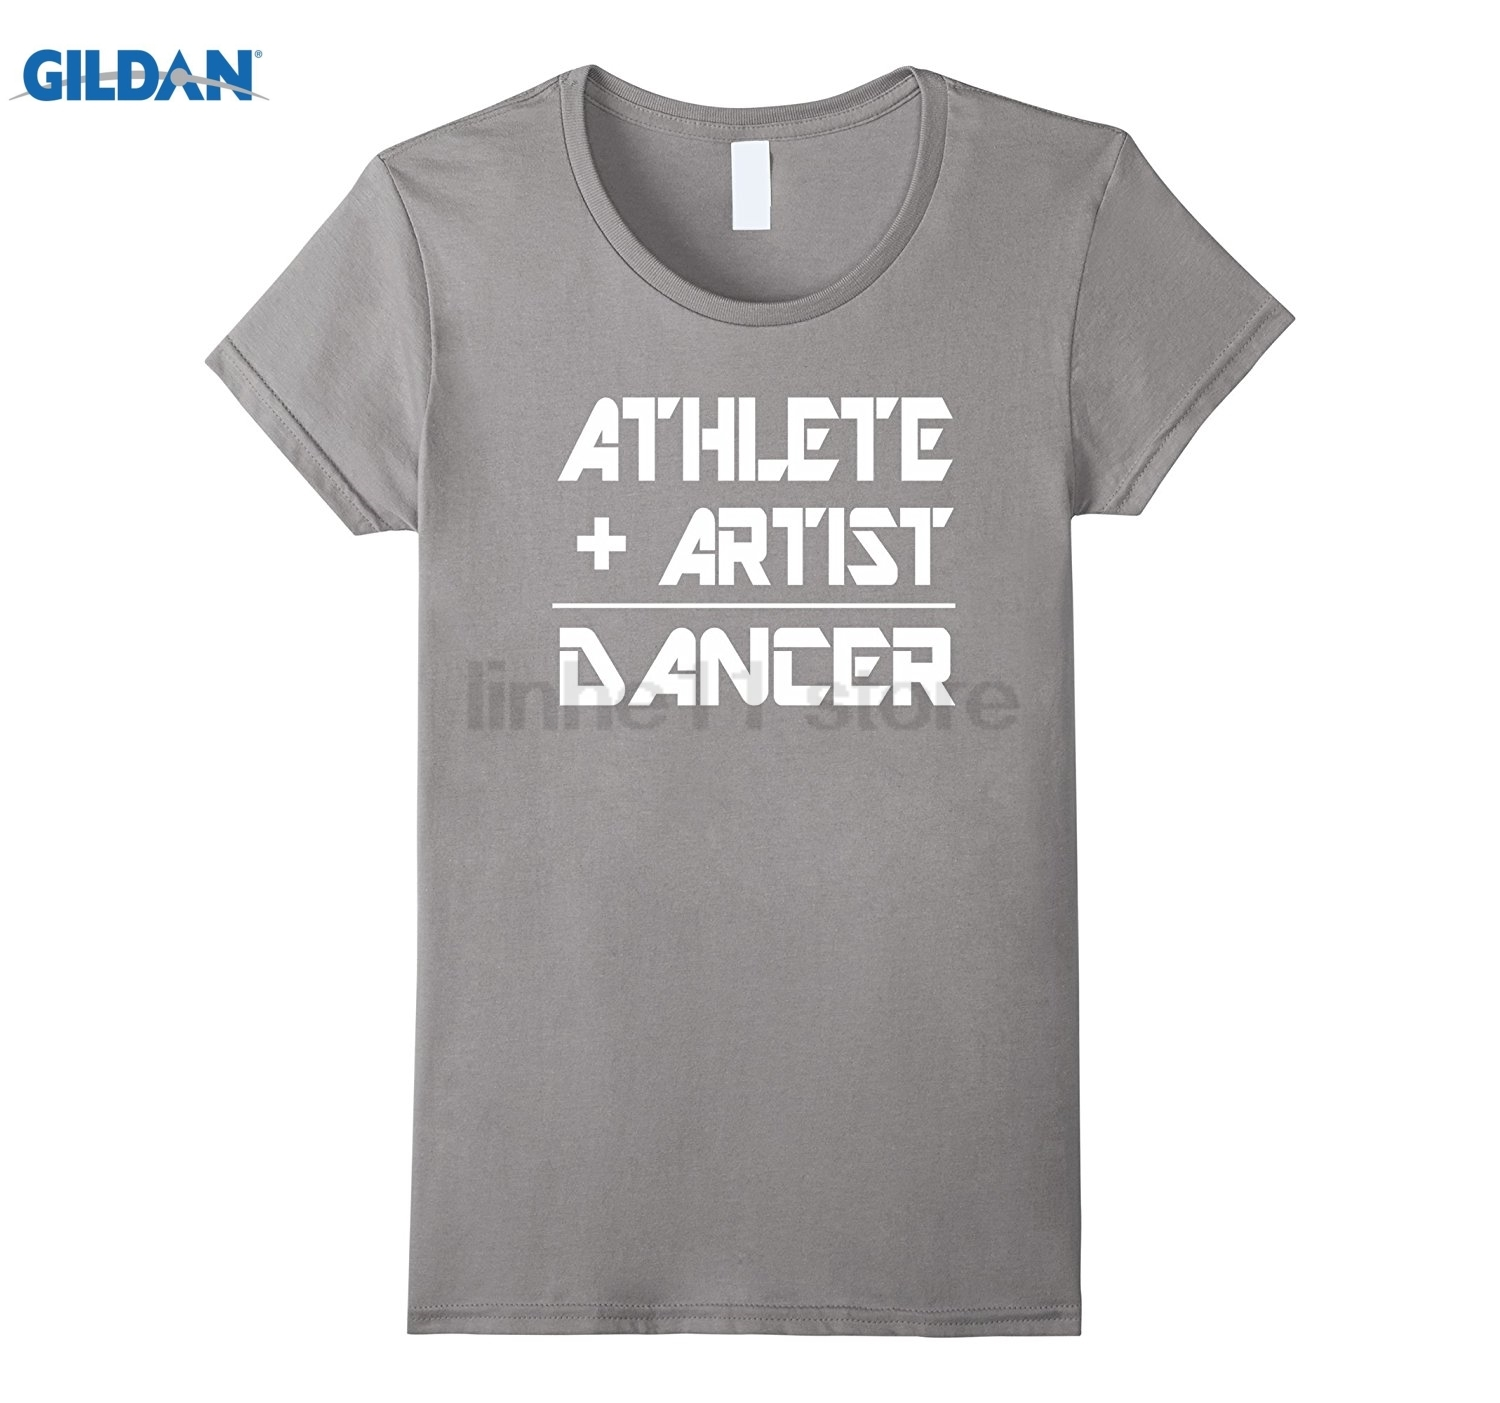 GILDAN Athlete Plus Artist Equals Dancer T-shirt Womens T-shirt